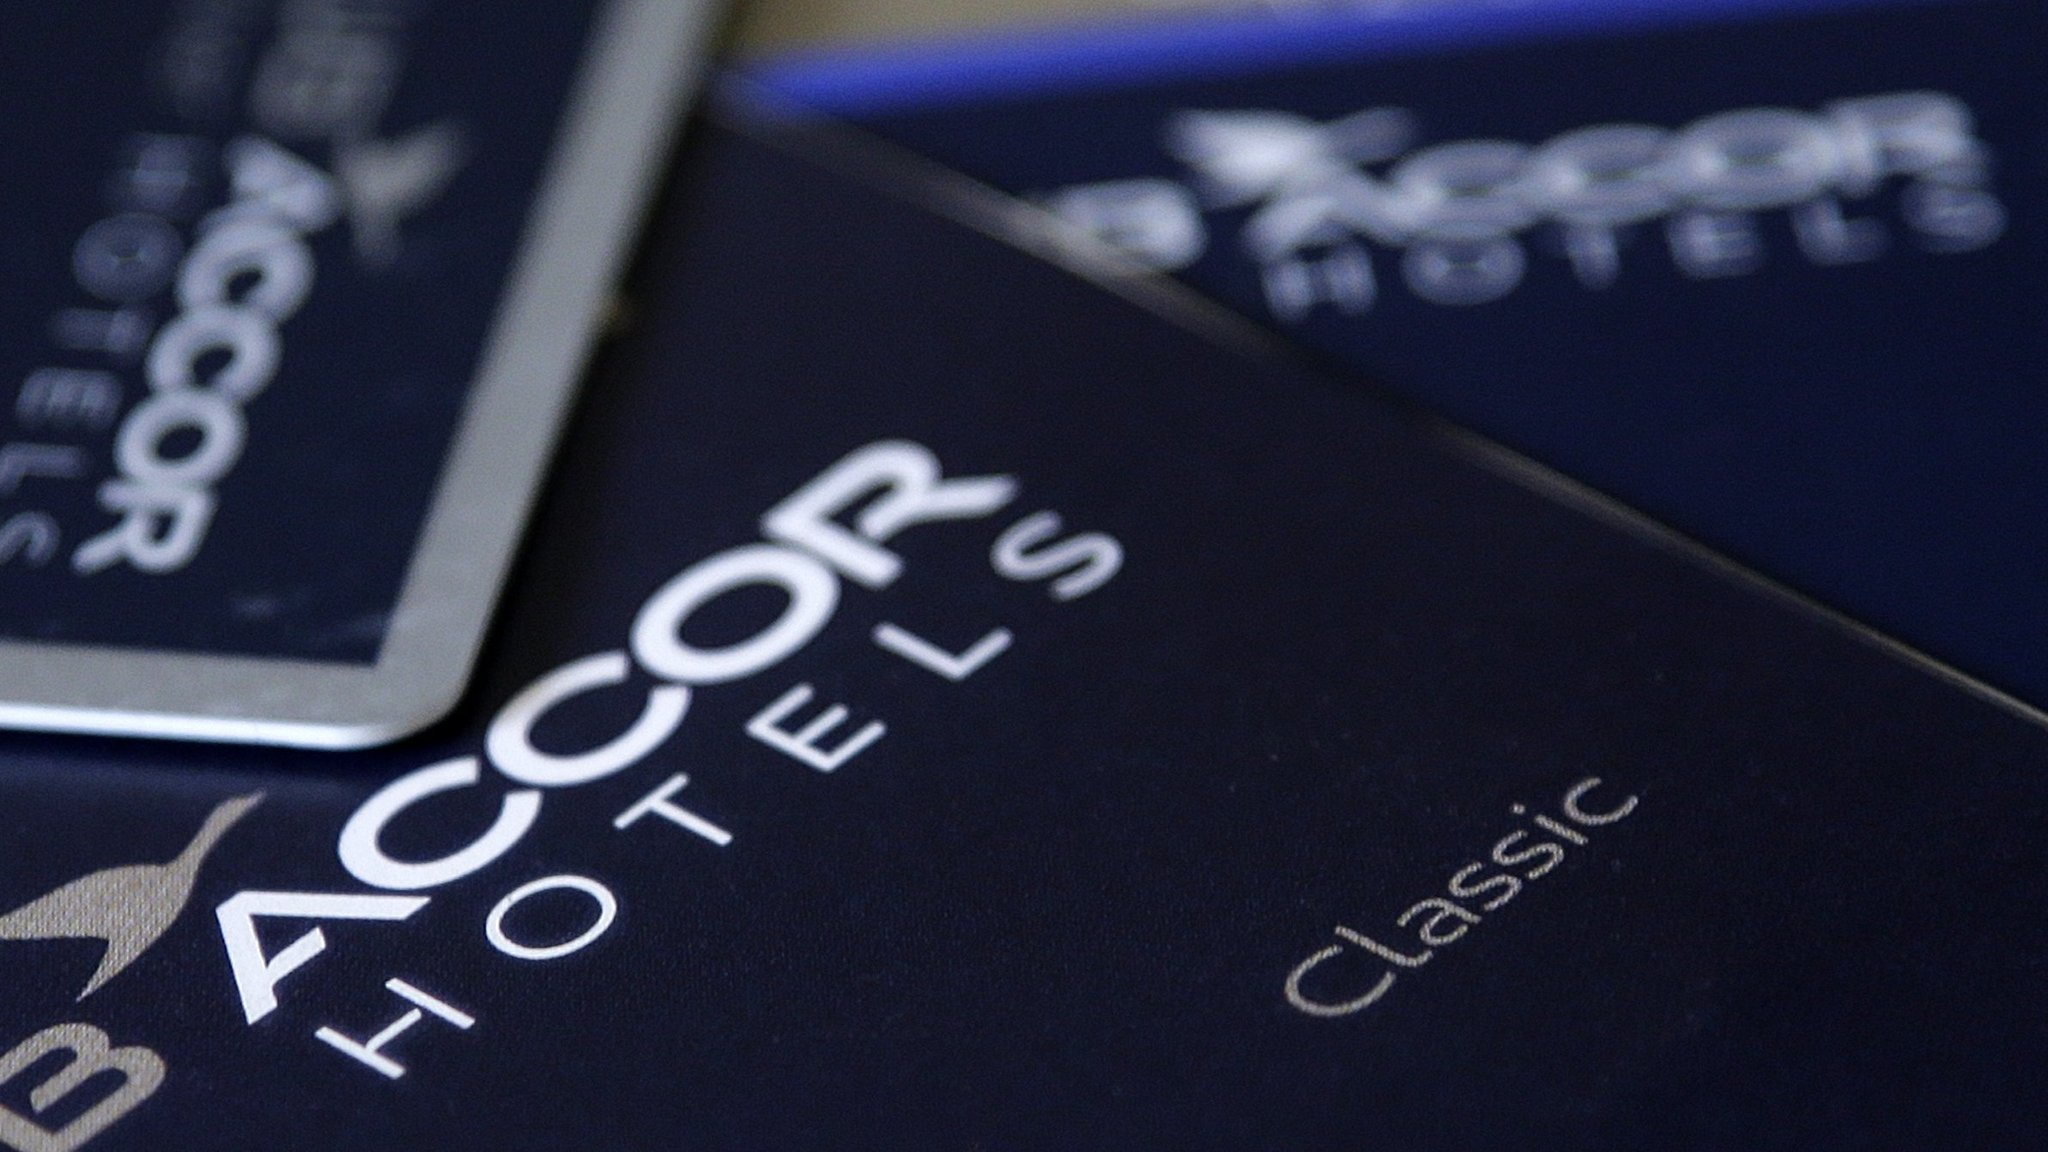 Accor Group Accor Rolls With Impact Of Paris Terror Attacks And Raises Profit